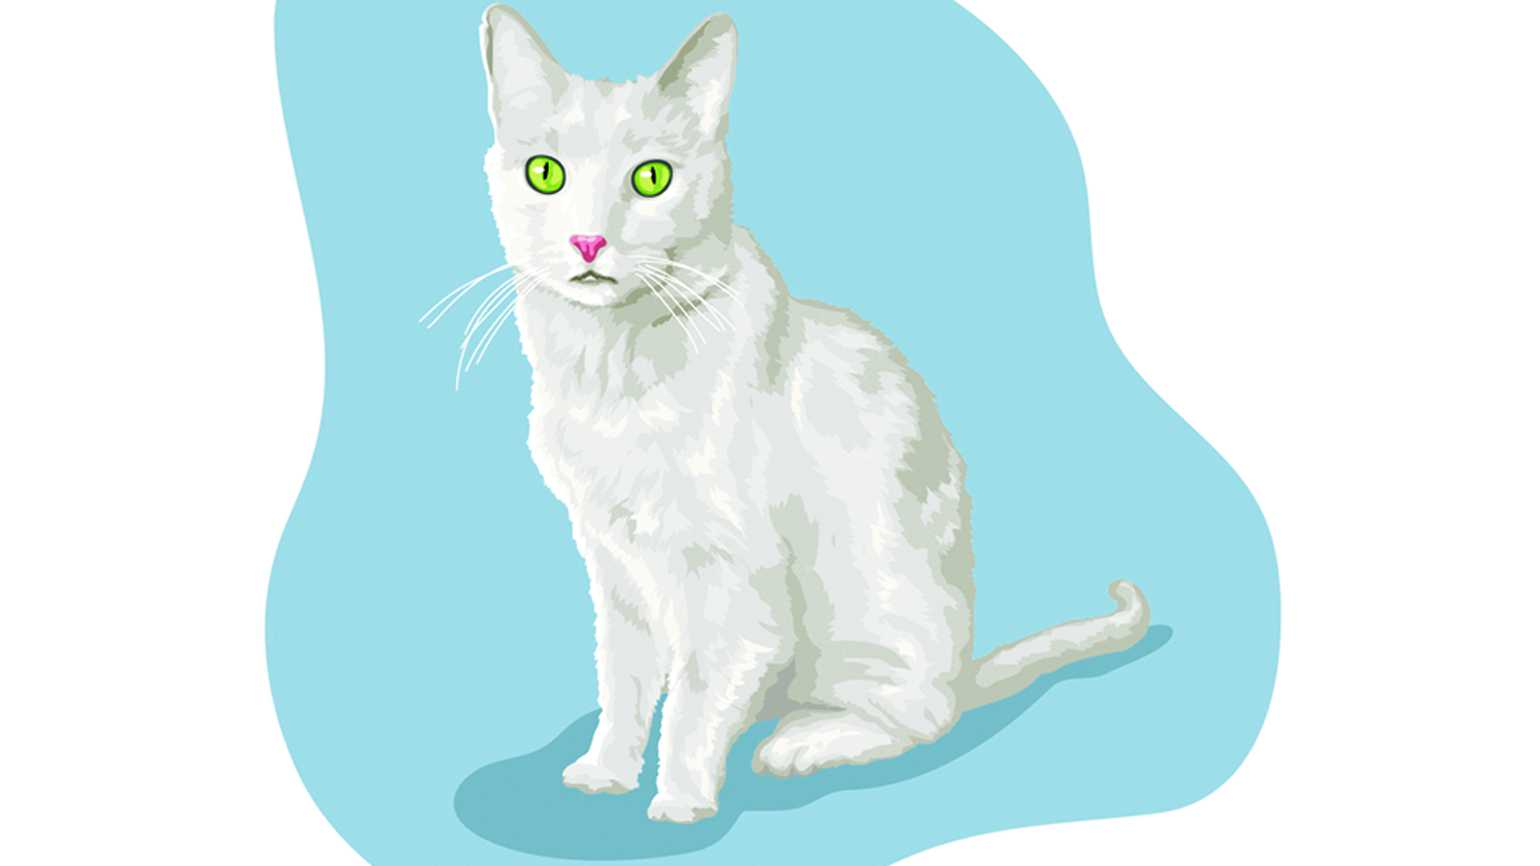 Illustration of a white cat with glowing eyes